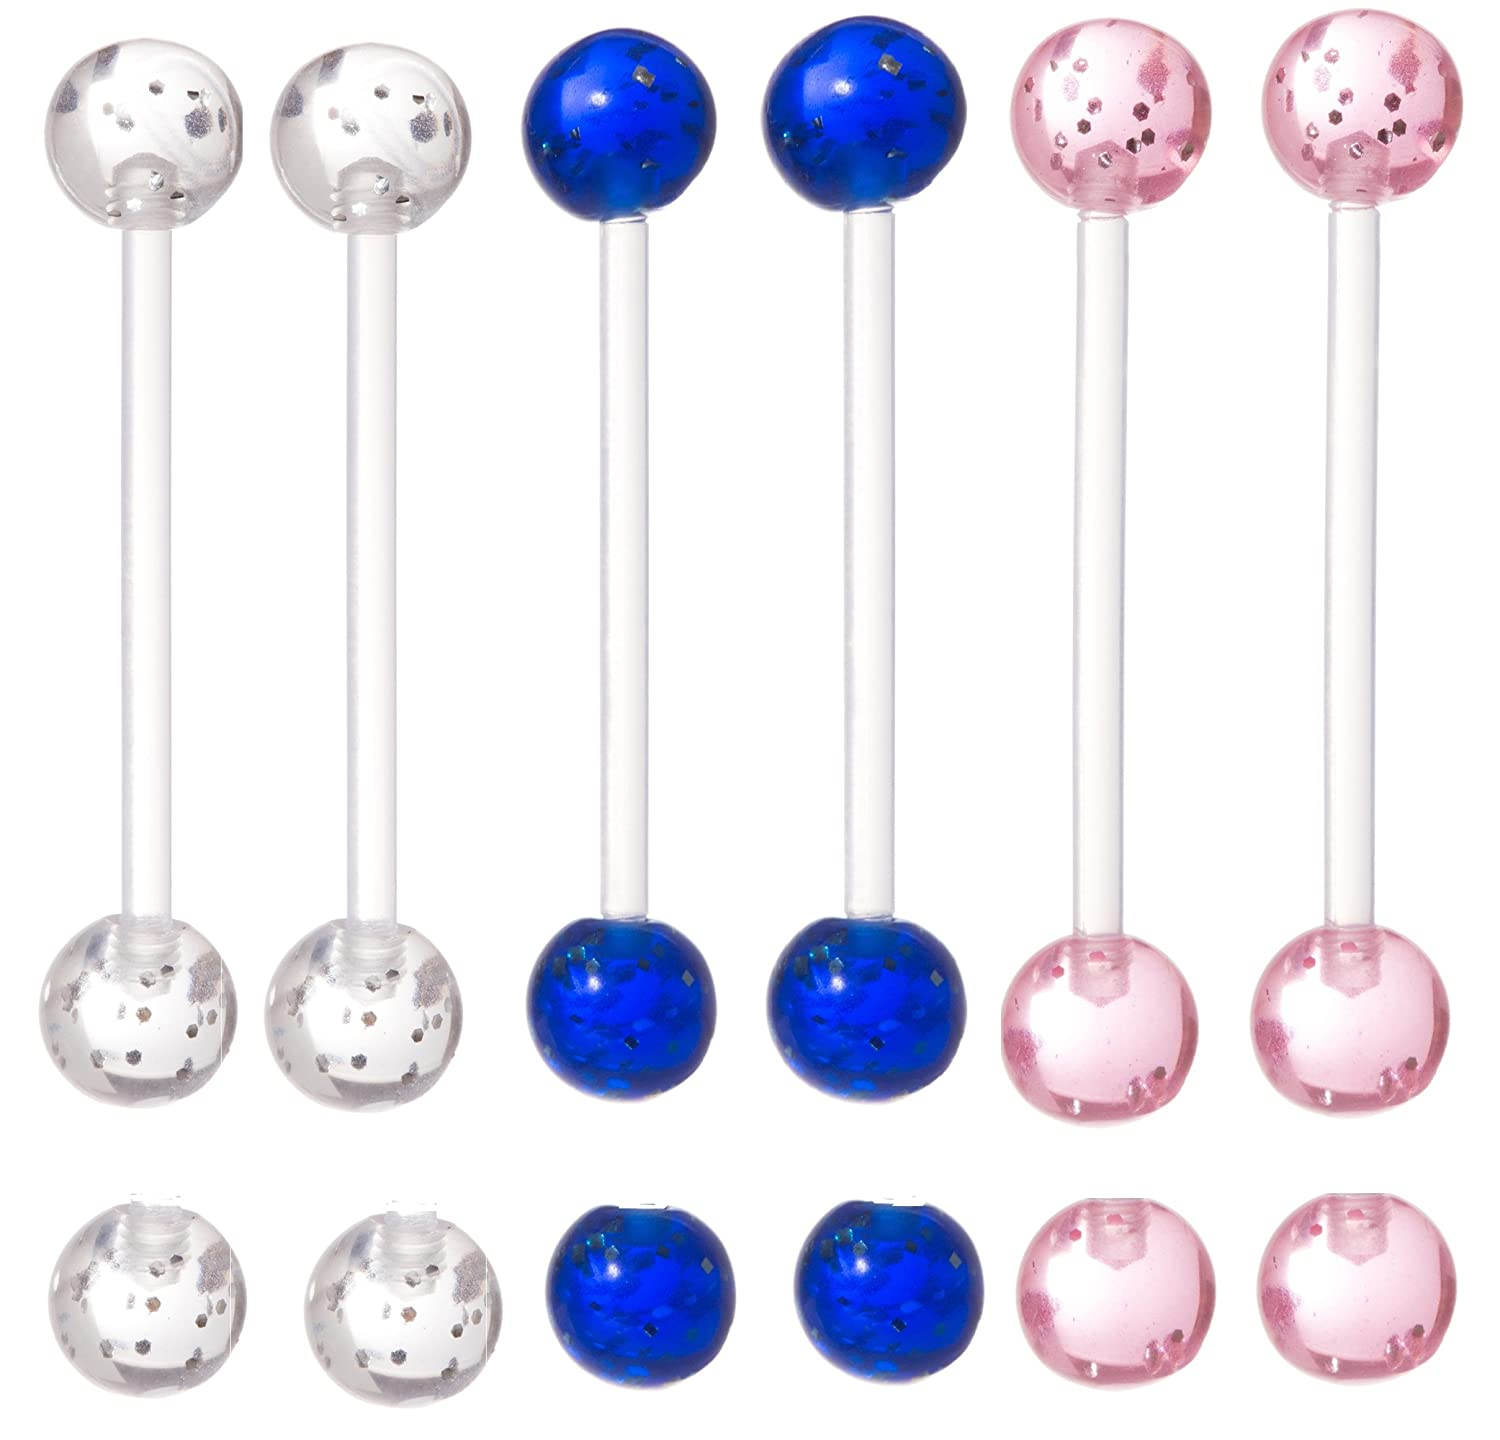 Set of 6 - Glitter Pregnancy Maternity Flexible Belly Button Ring Threaded Retainer - Nickel / Allergy Free - 14G - Clear, Pink, and Blue